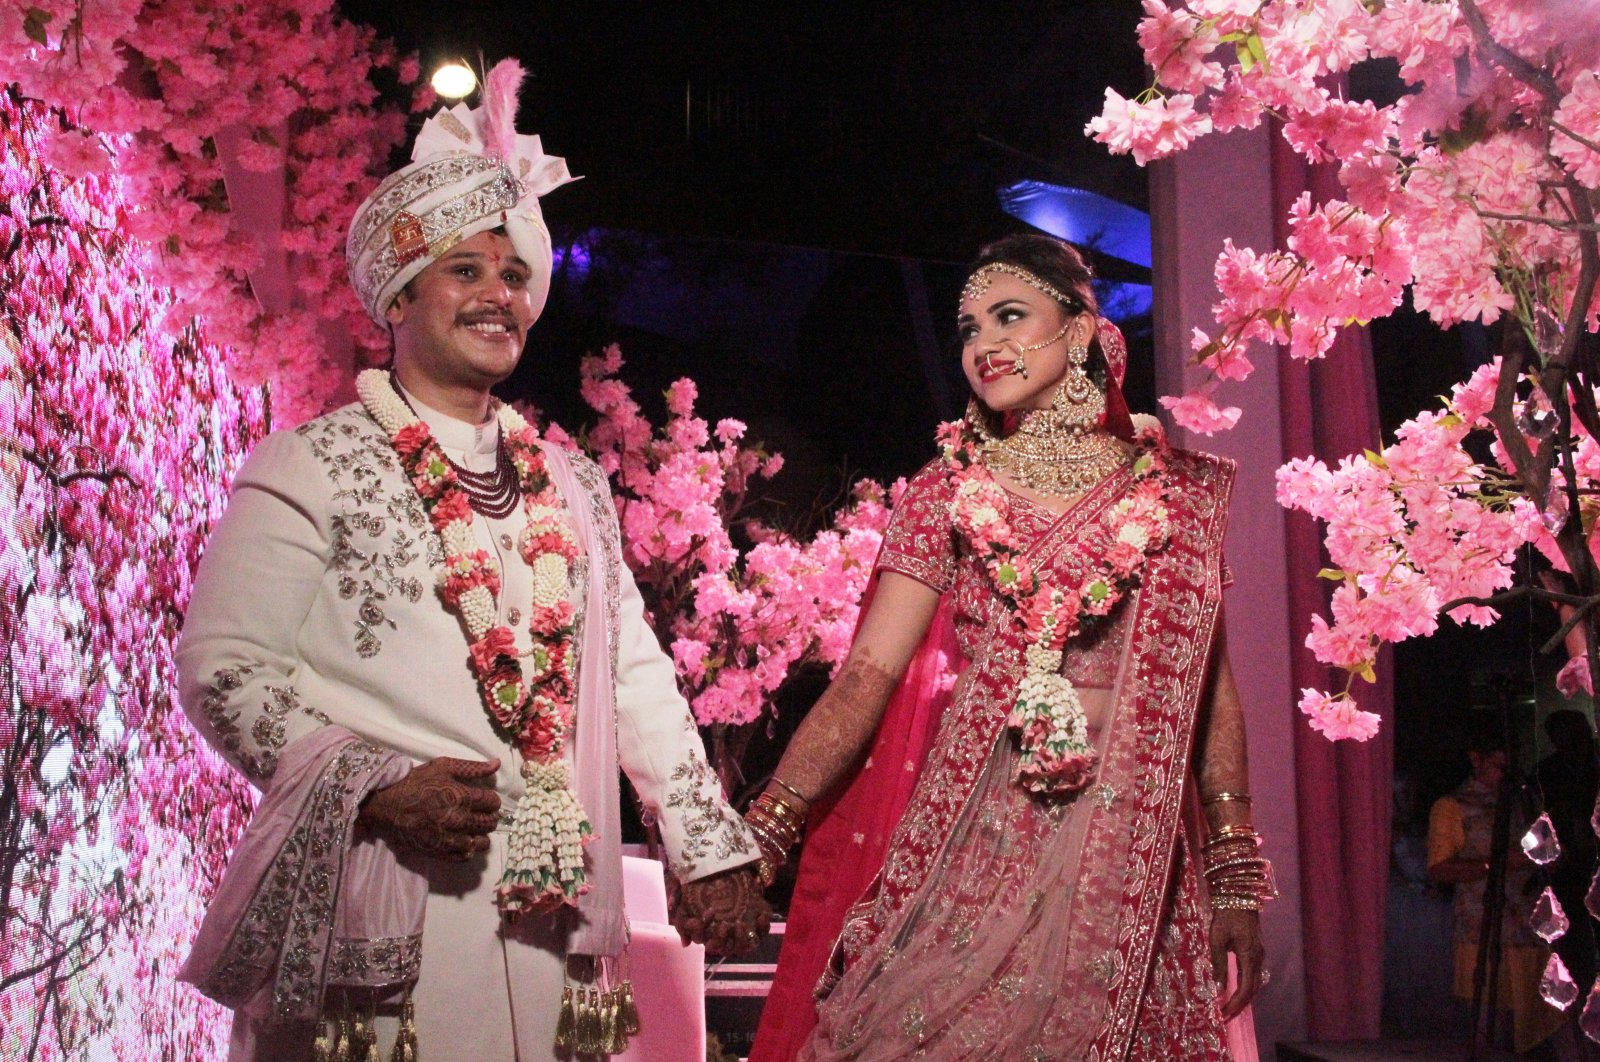 A view from an Indian wedding held in southern Turkish resort town of Bodrum. (IHA Photo)